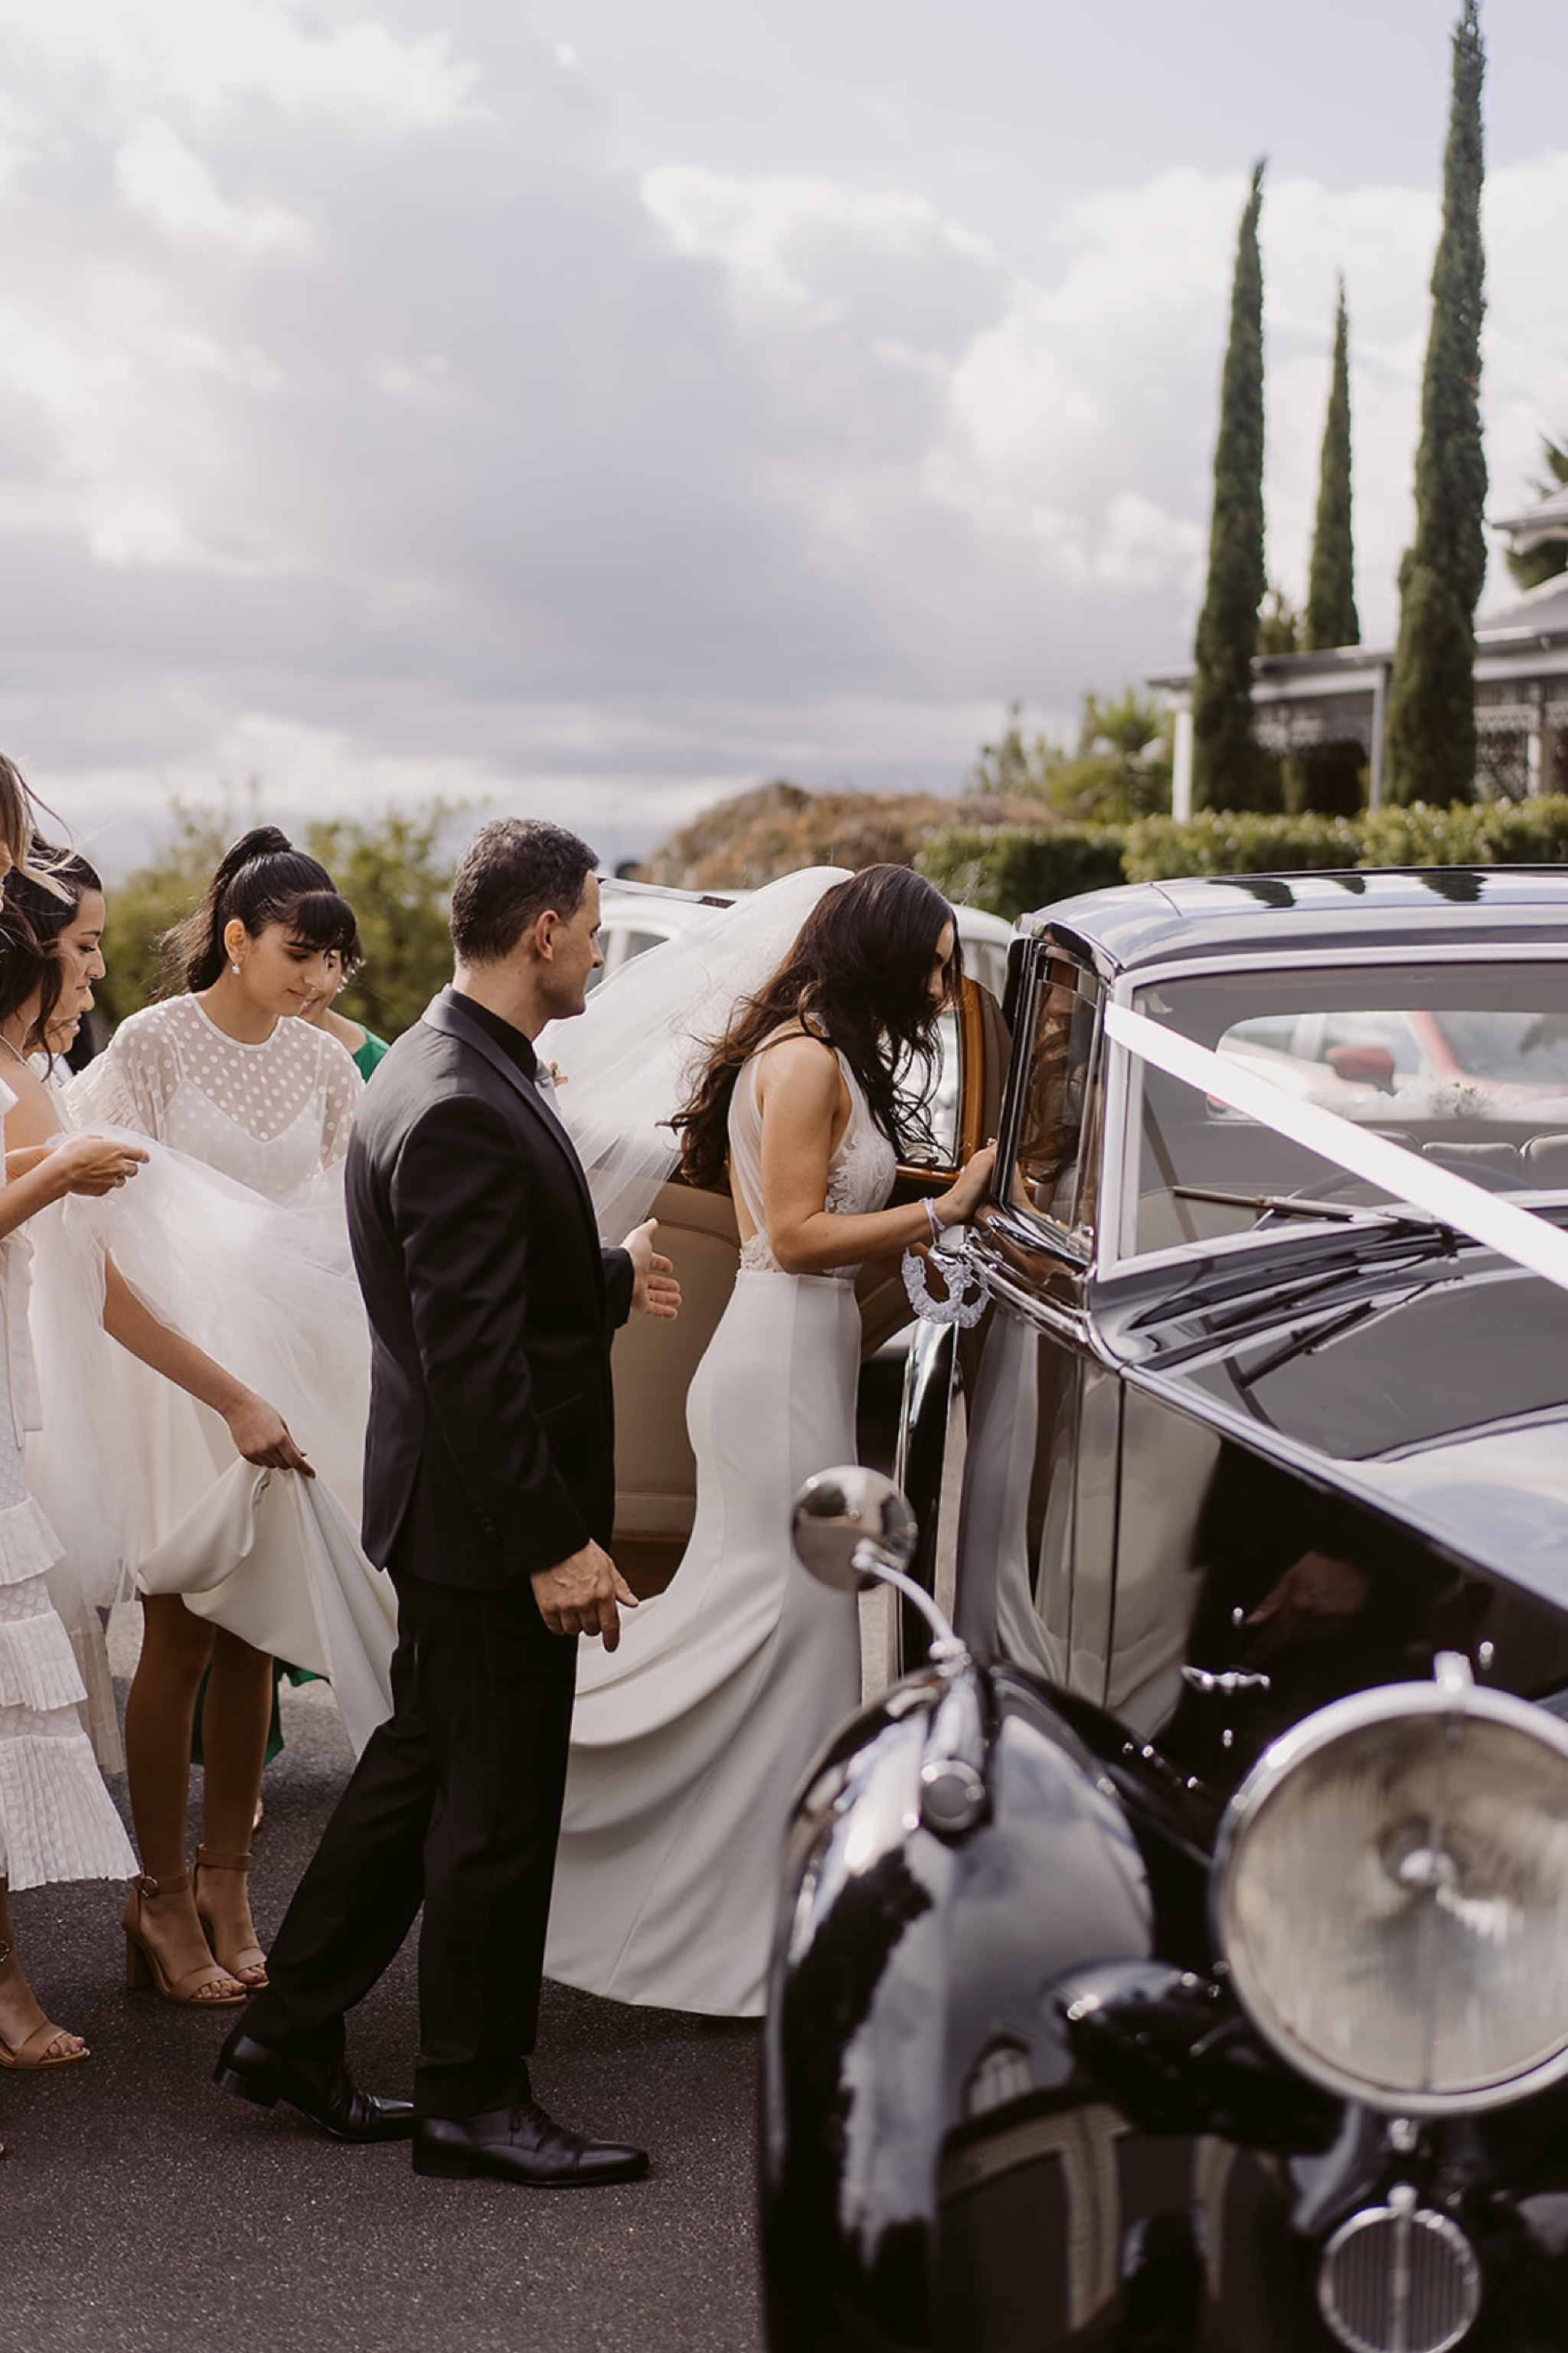 Stones of the Yarra Valley wedding photographer Ashleigh haase49.jpg